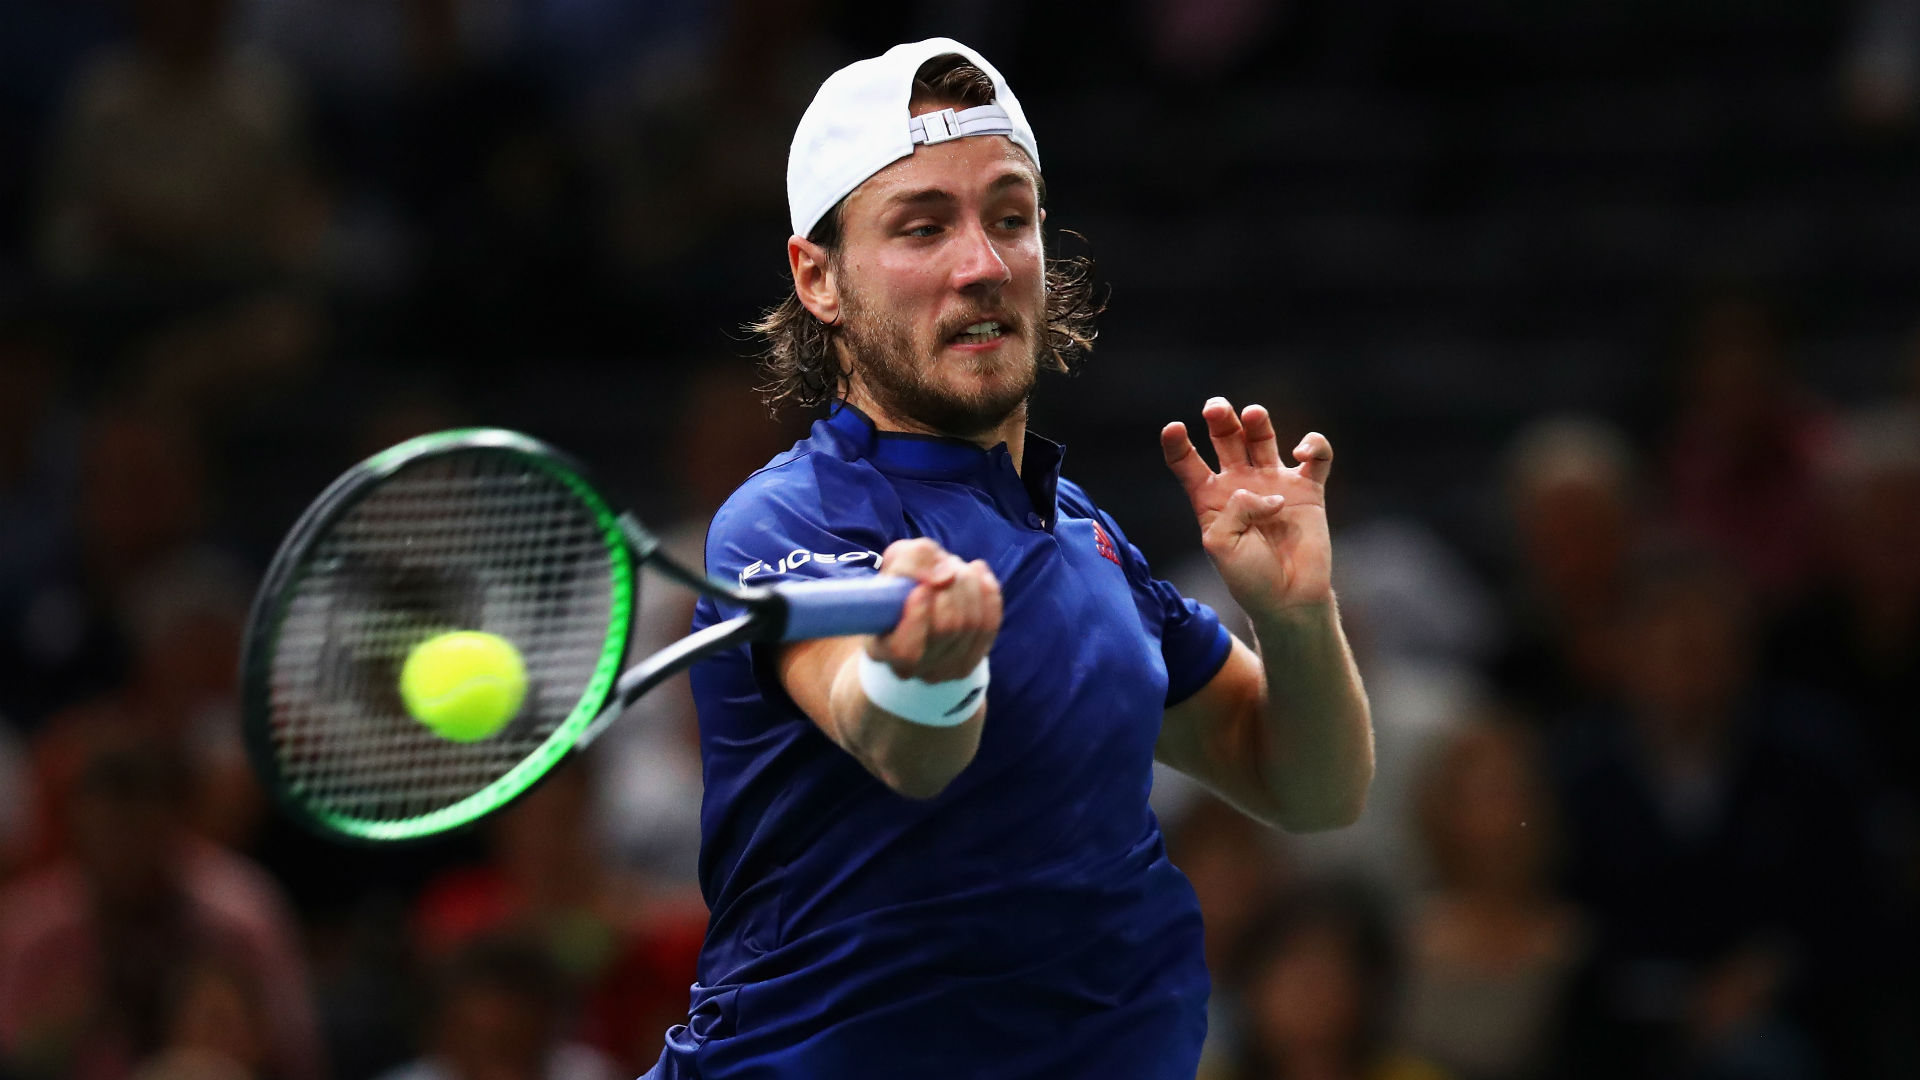 France survives Belgium 3-2 in Davis Cup final